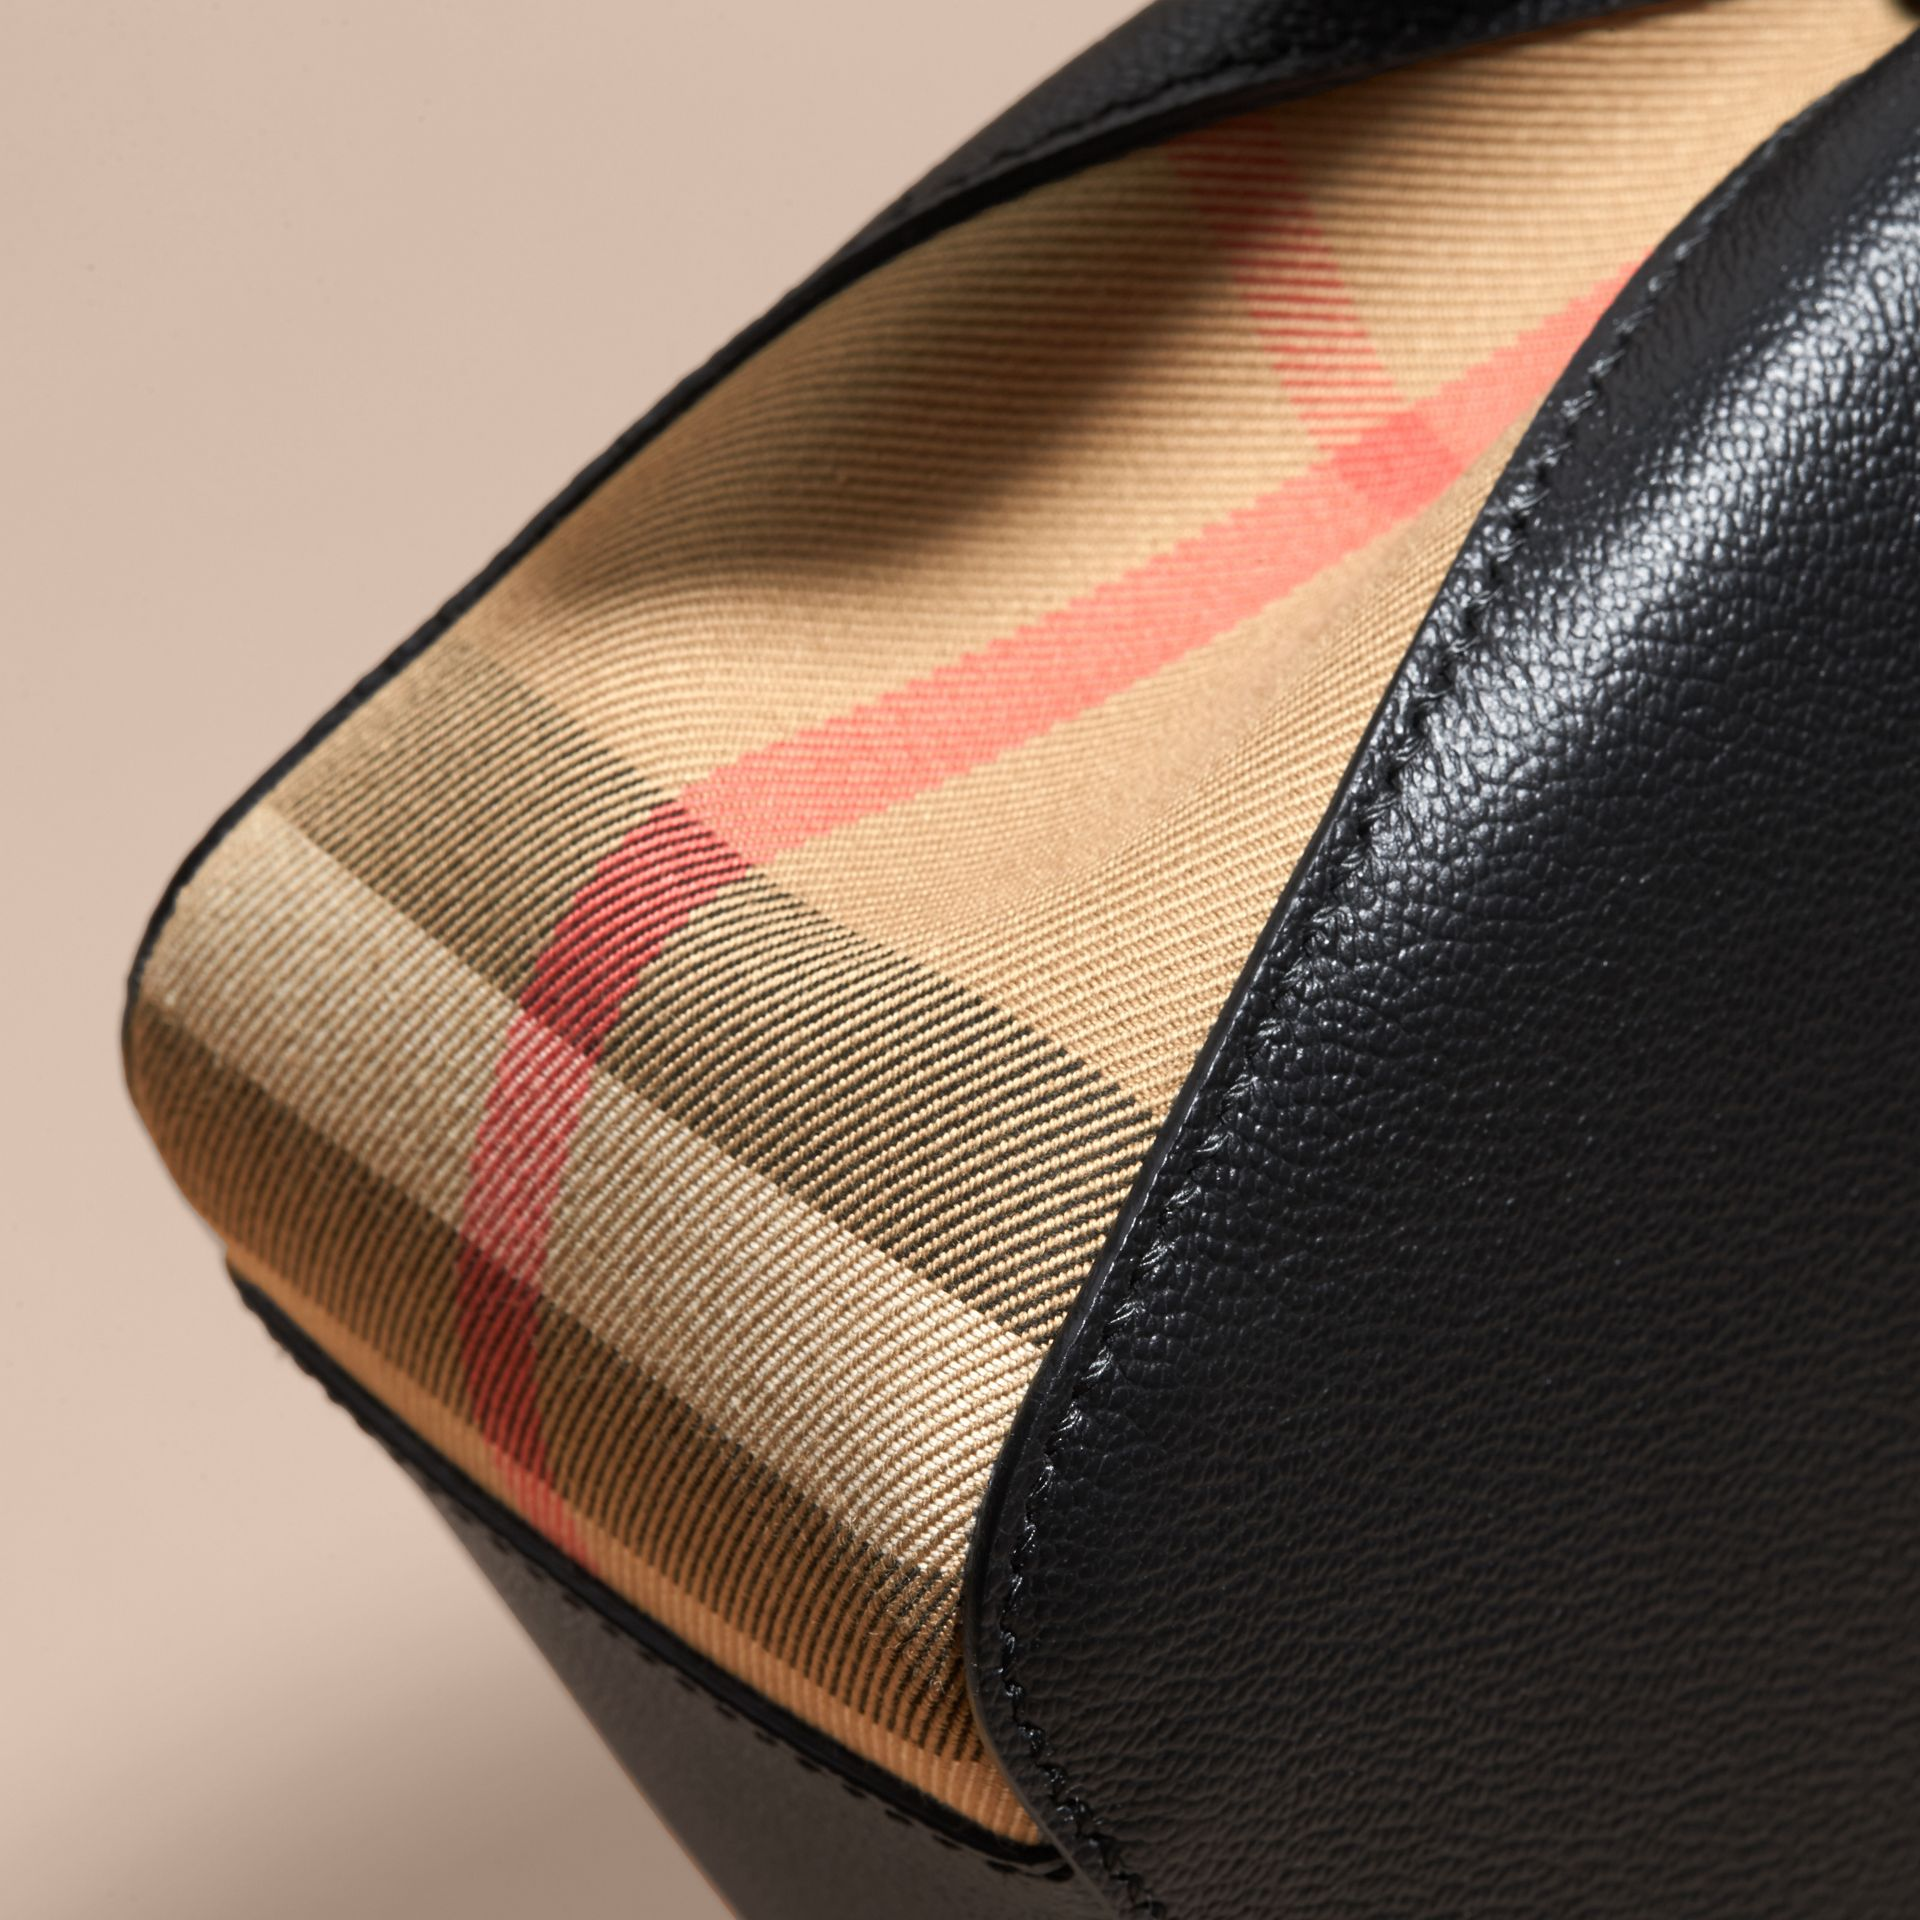 Buckle Detail Leather and House Check Crossbody Bag in Black - Women | Burberry Canada - gallery image 6